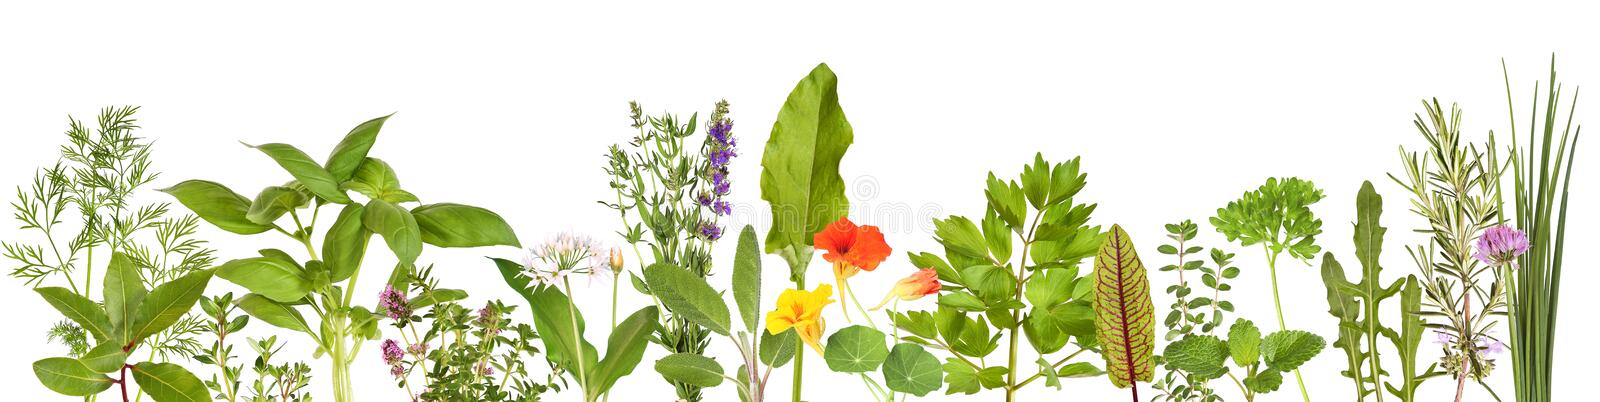 Large selection of fresh herbs stock photo